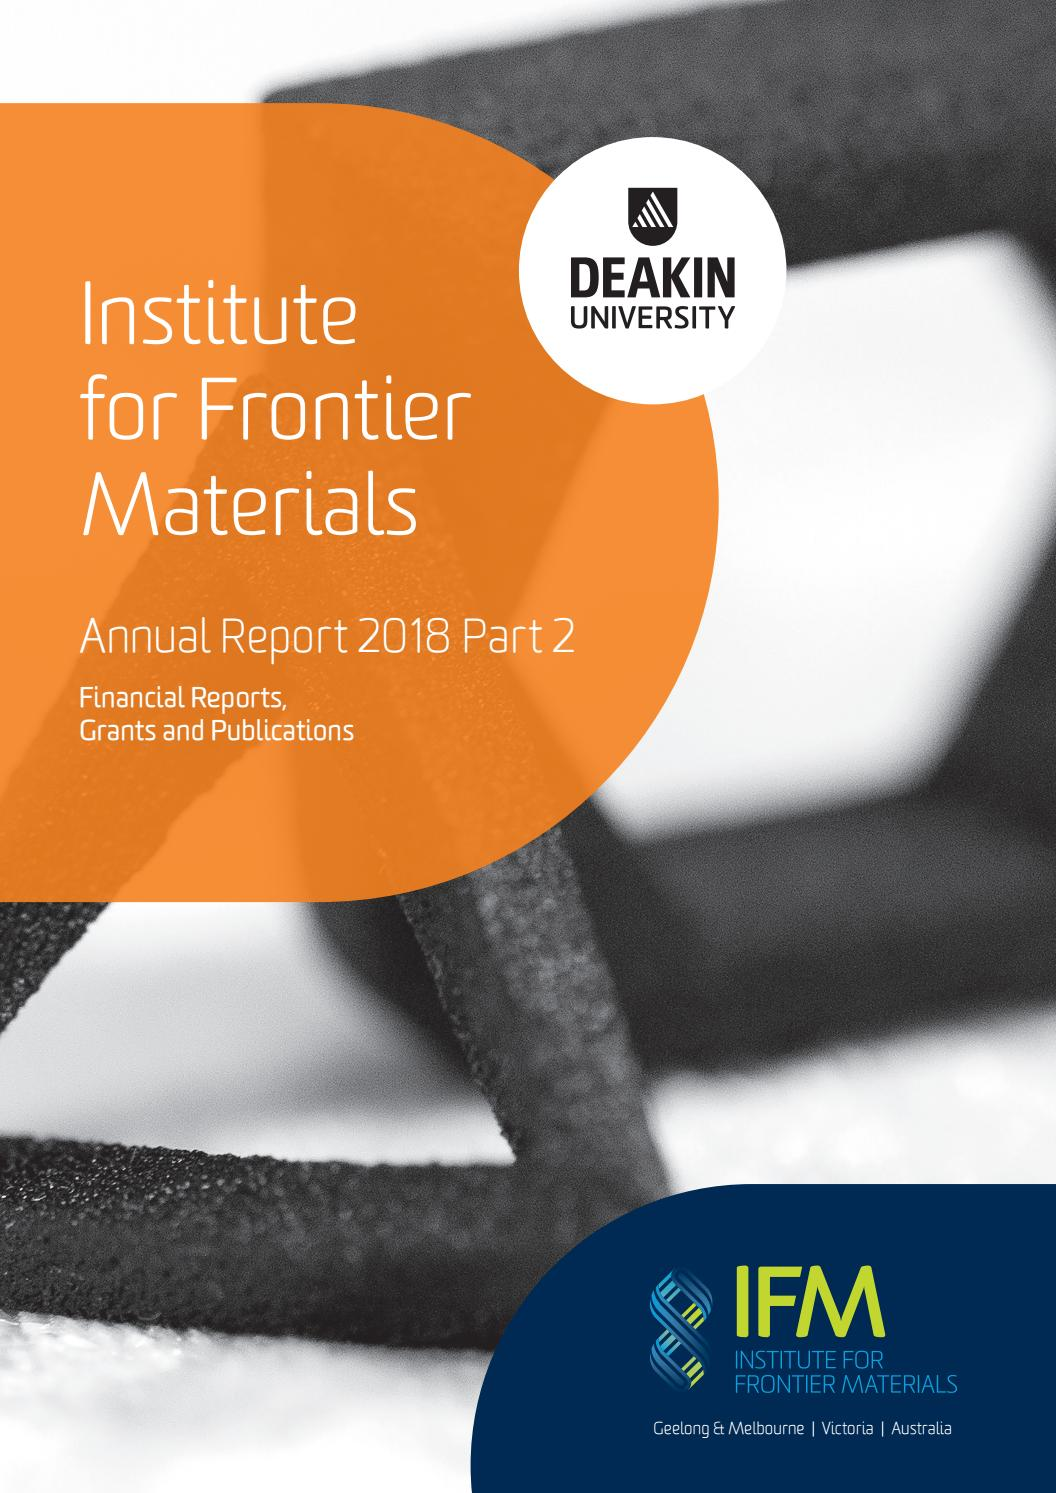 Institute for Frontier Materials Annual Report 2018 Part 2